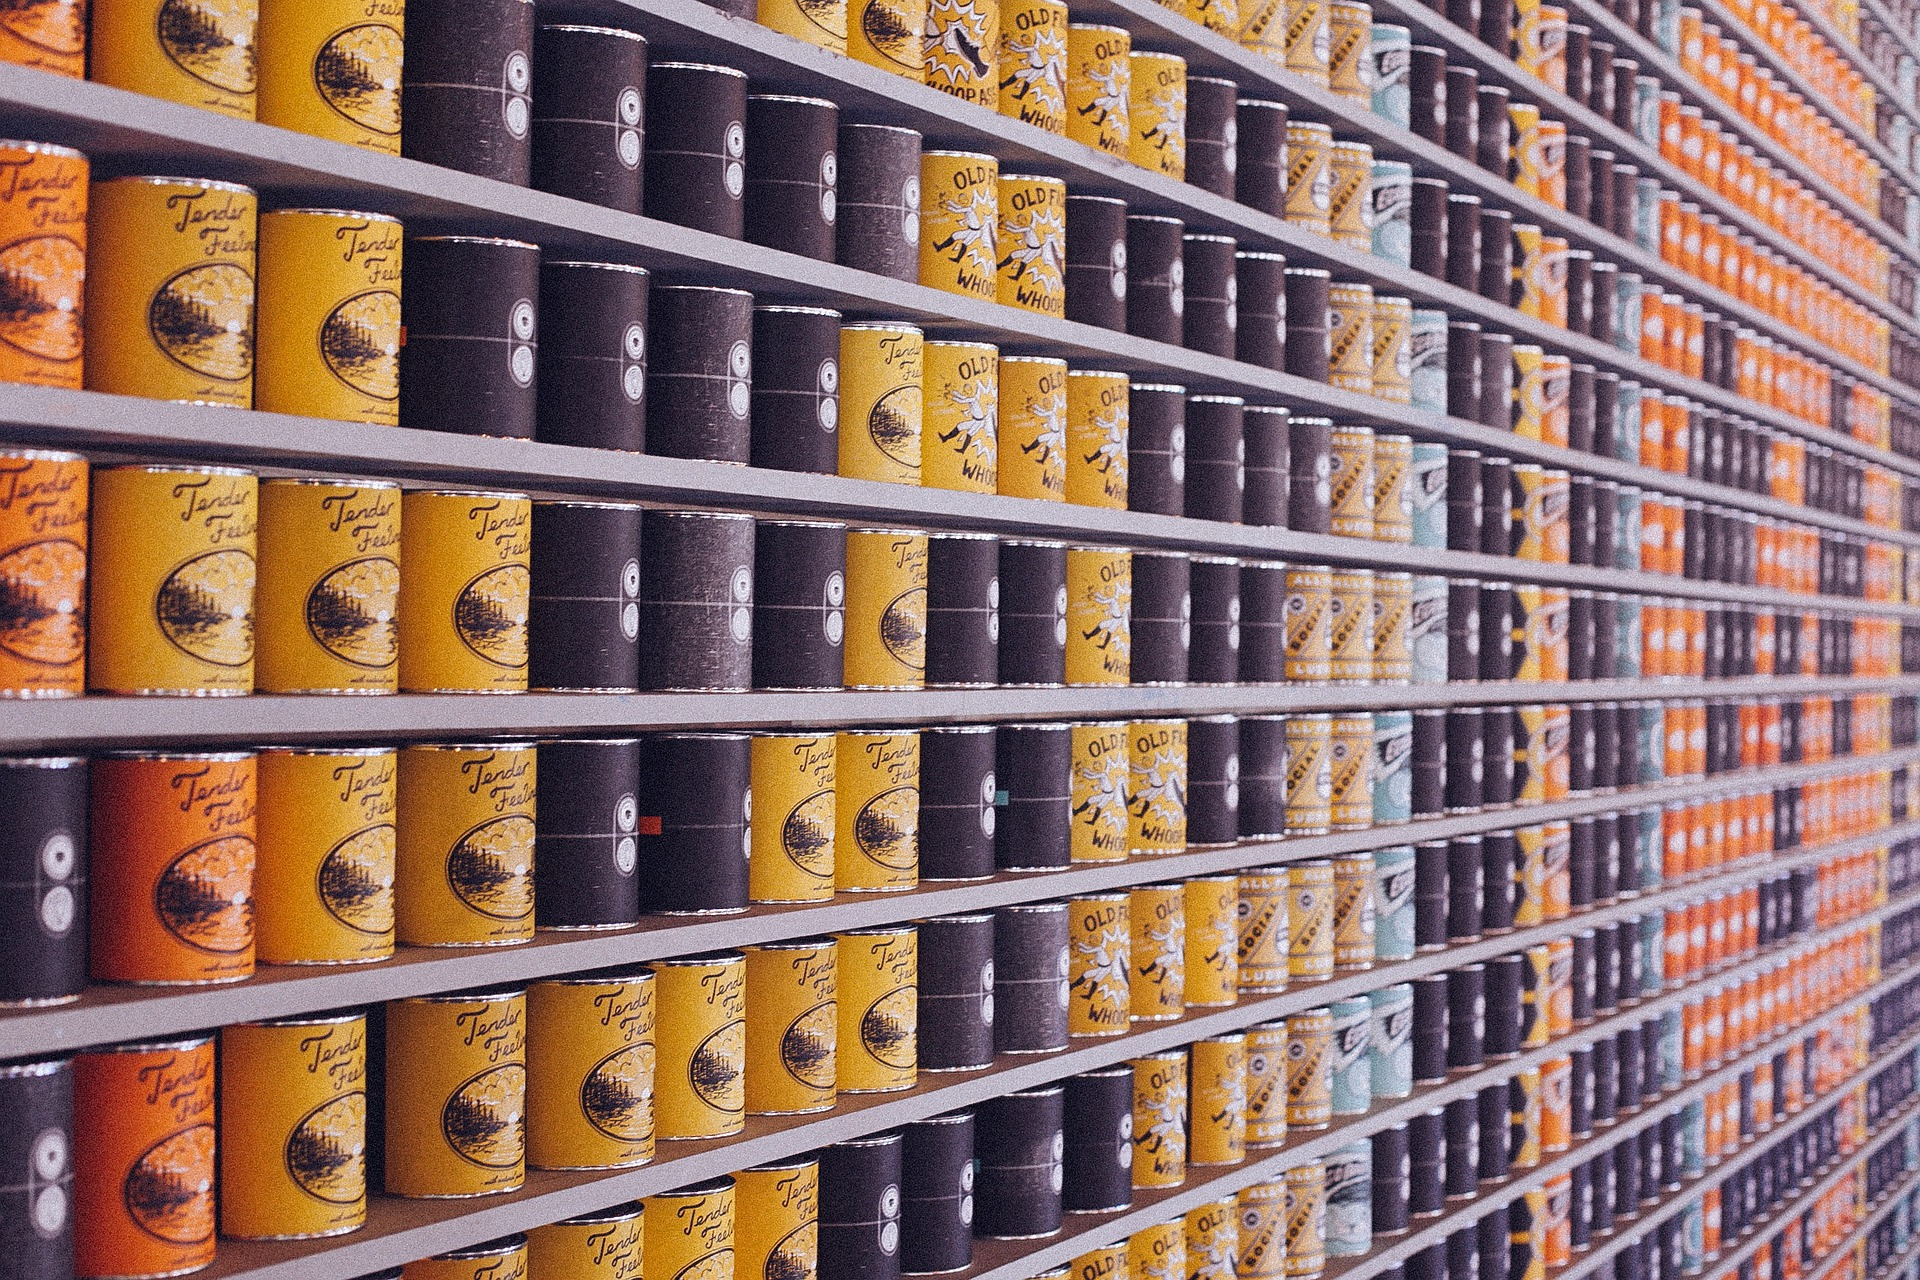 2020.10. Stamegna Virtual Meeting - Canned Food and Condiments